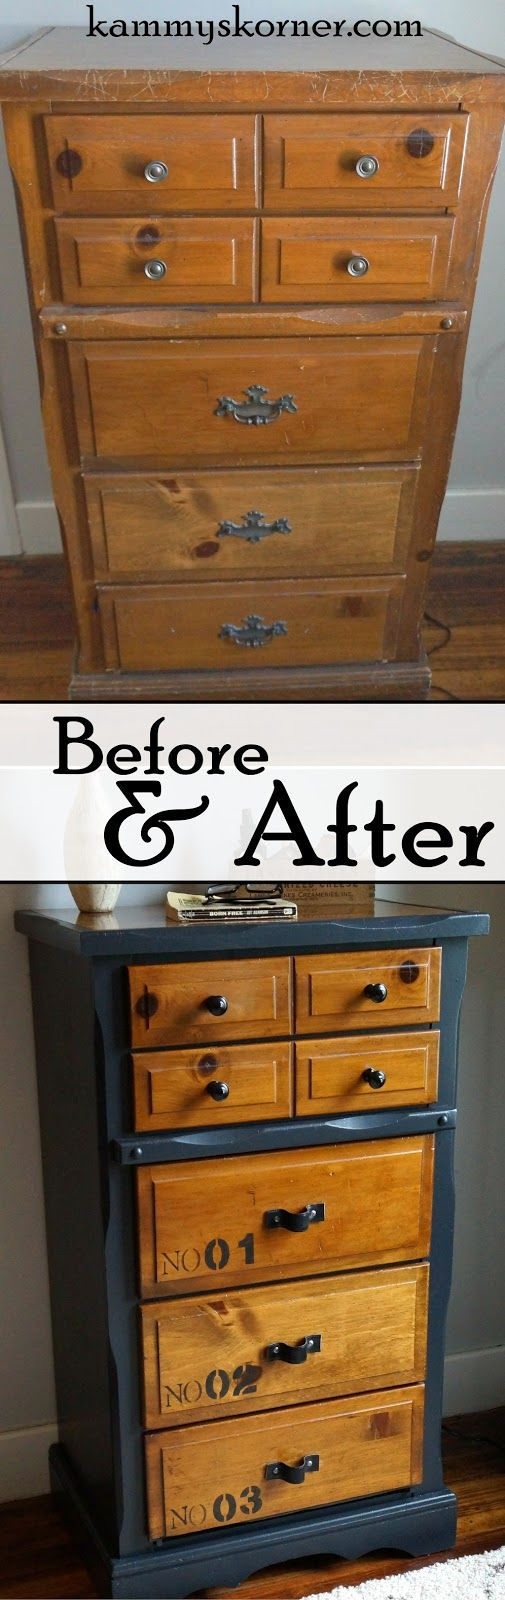 Kammy's Korner: Belt Strap Pulls on a Two Tone Dresser, stenciled on numbered drawers, and curtain finials for knobs